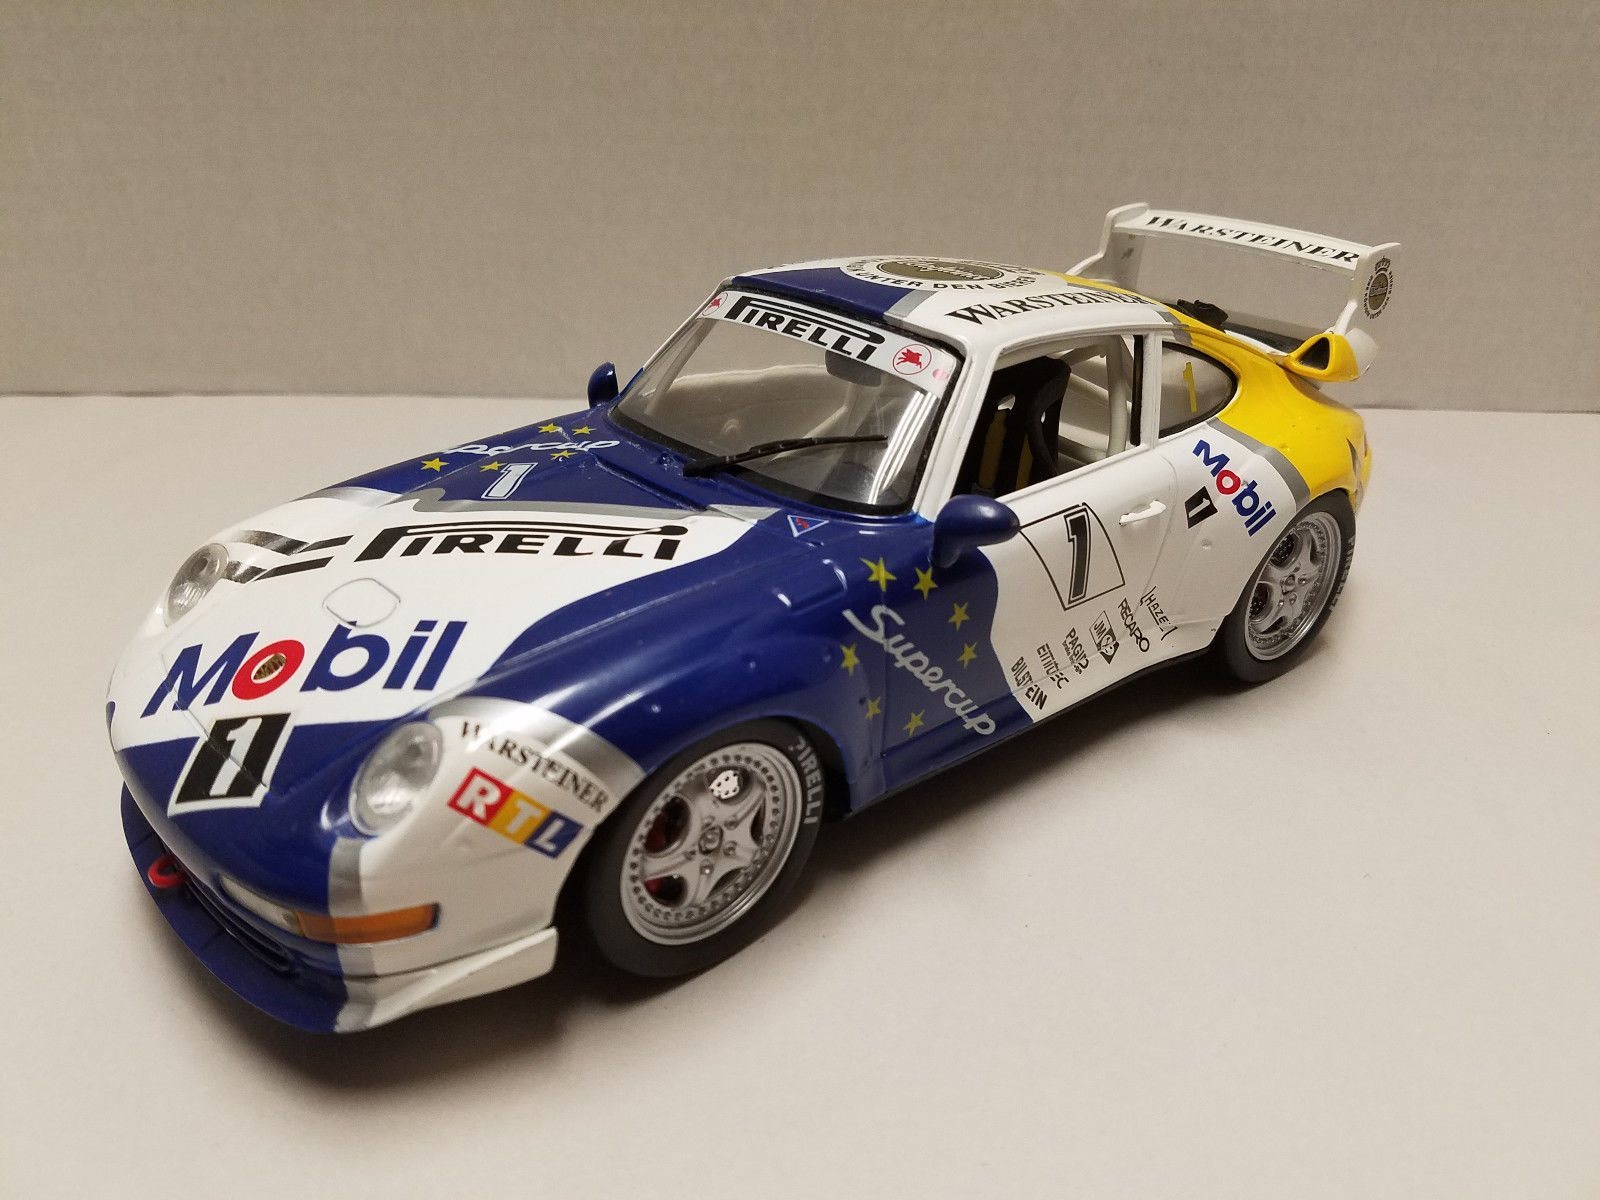 257566022_64a96418-b582-43b1-aa0b-4ad011693cf3 Exciting Anson Racing Porsche 911 Gt1 Cars Trend